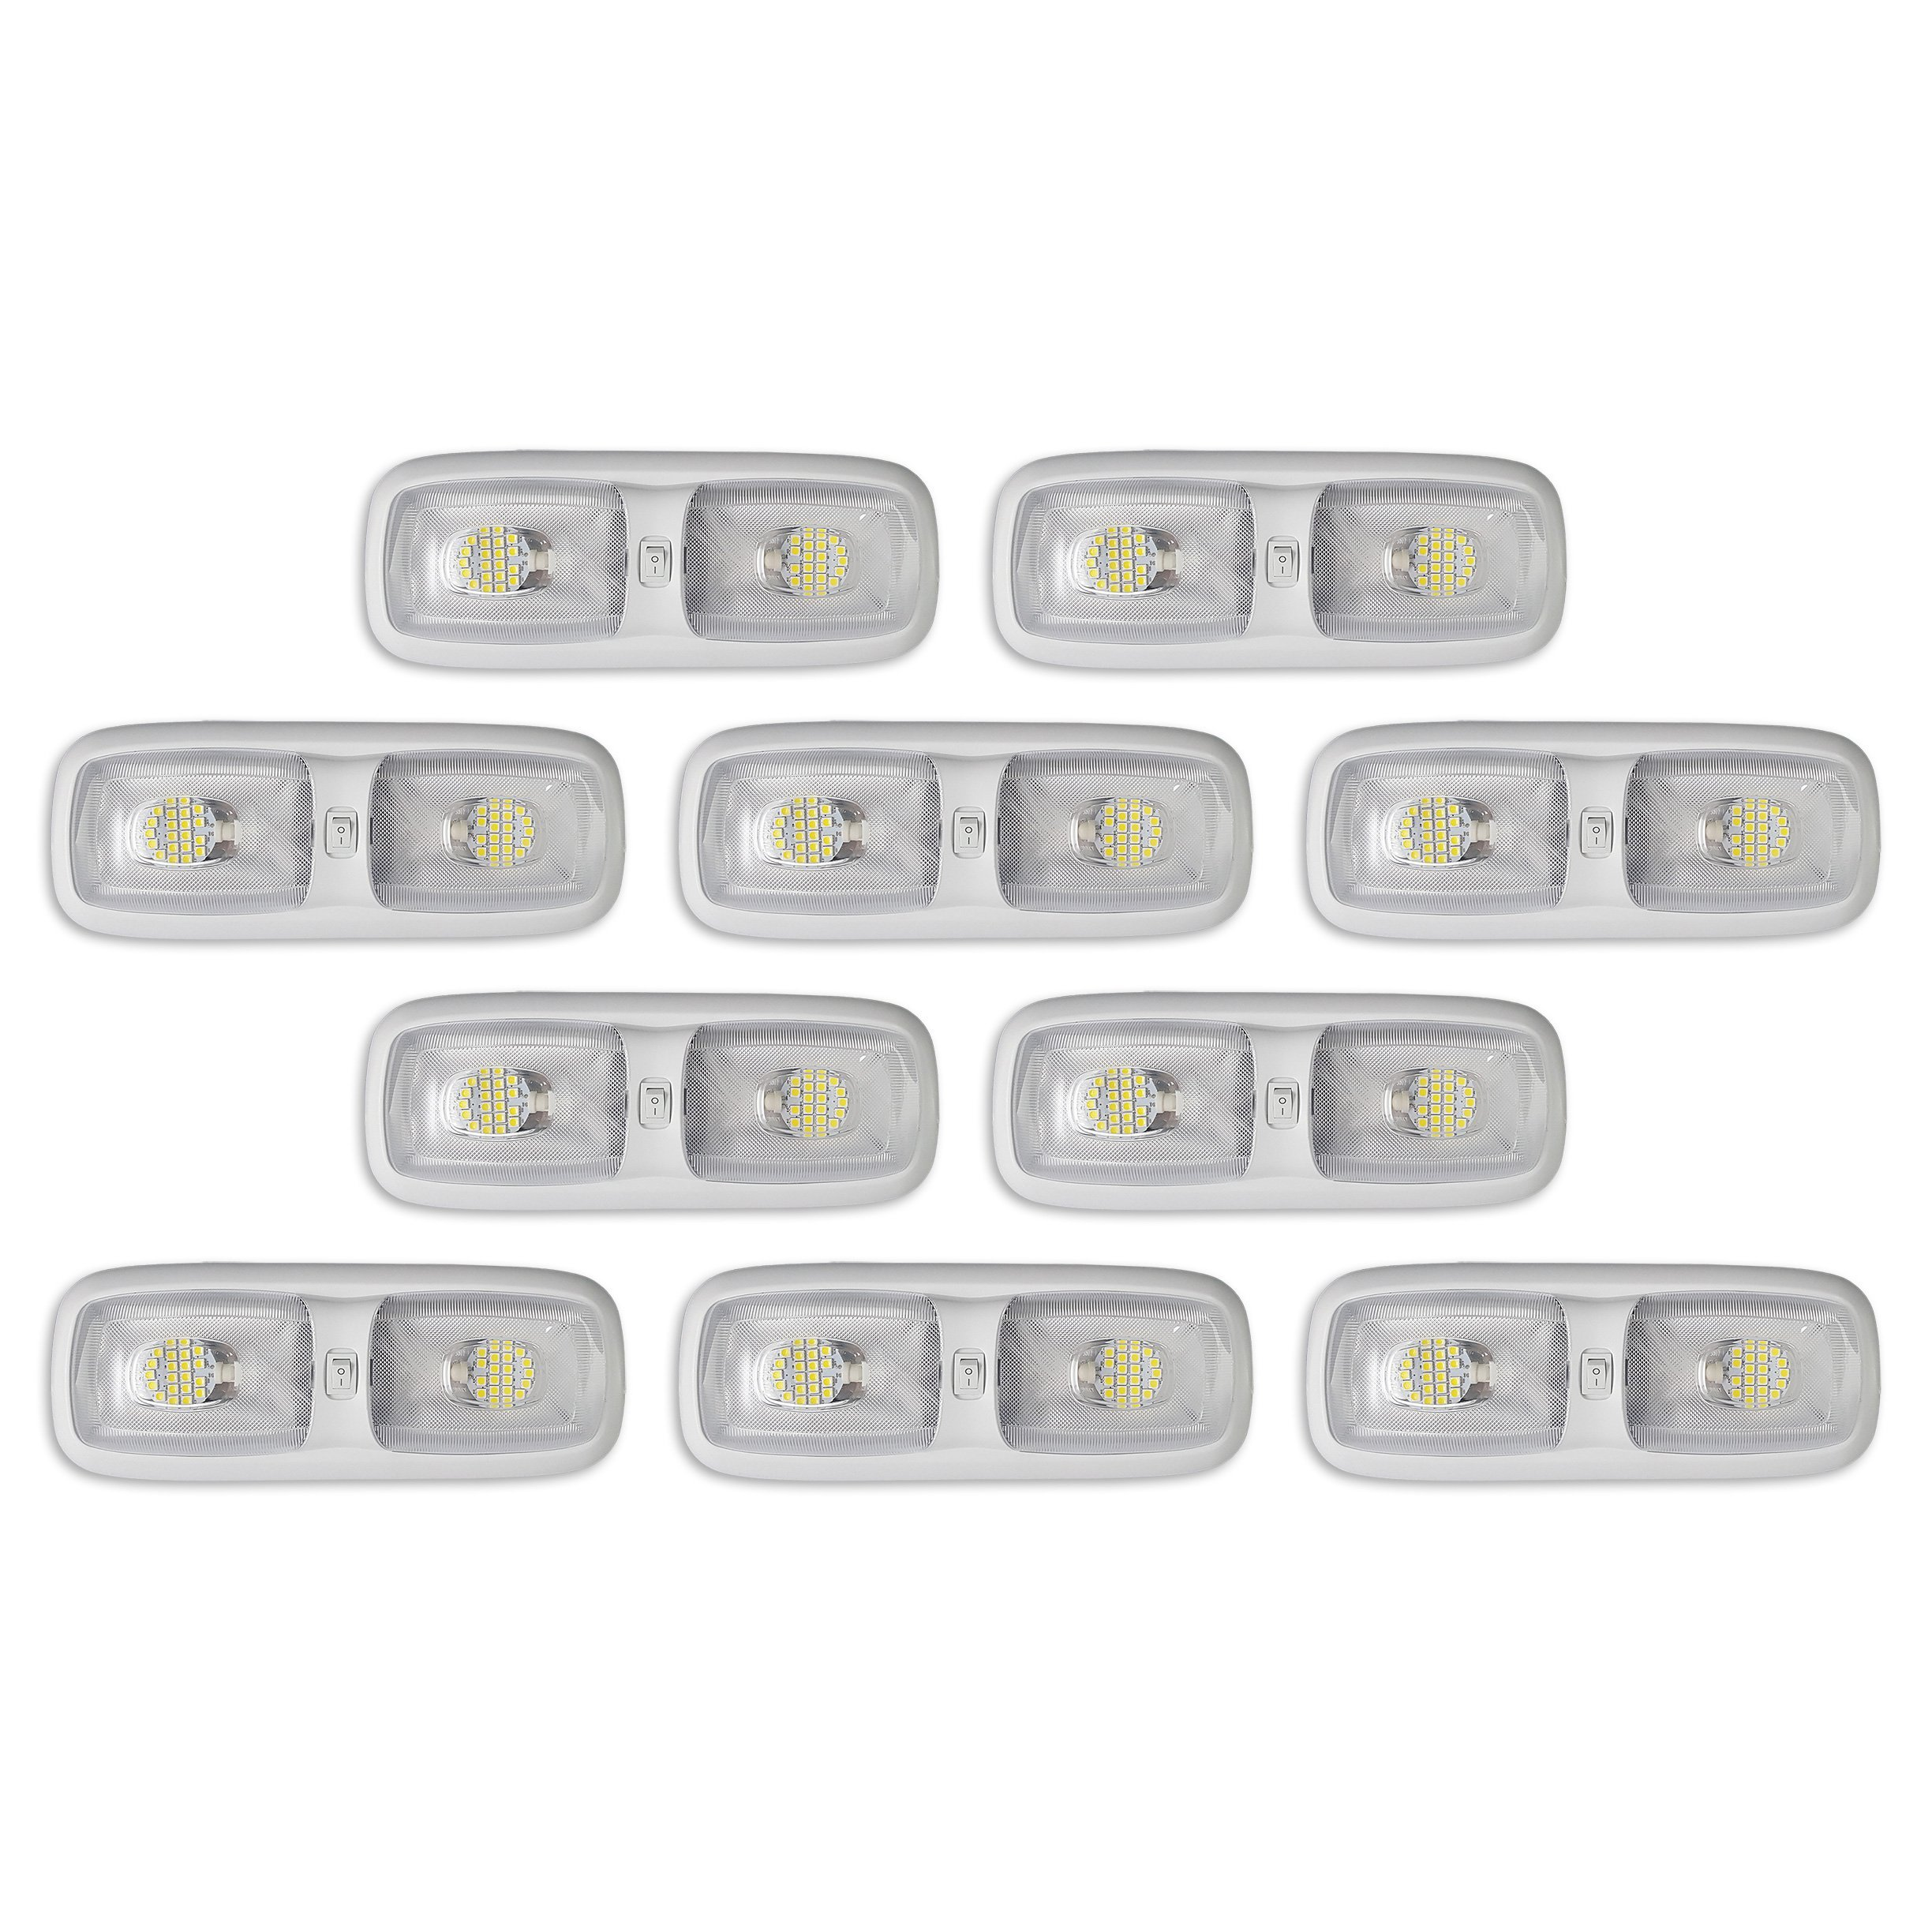 10 NEW RV LED 12v 4200K CEILING FIXTURE DOUBLE DOME PANCAKE LIGHT FOR CAMPER TRAILER RV MARINE by RecPro